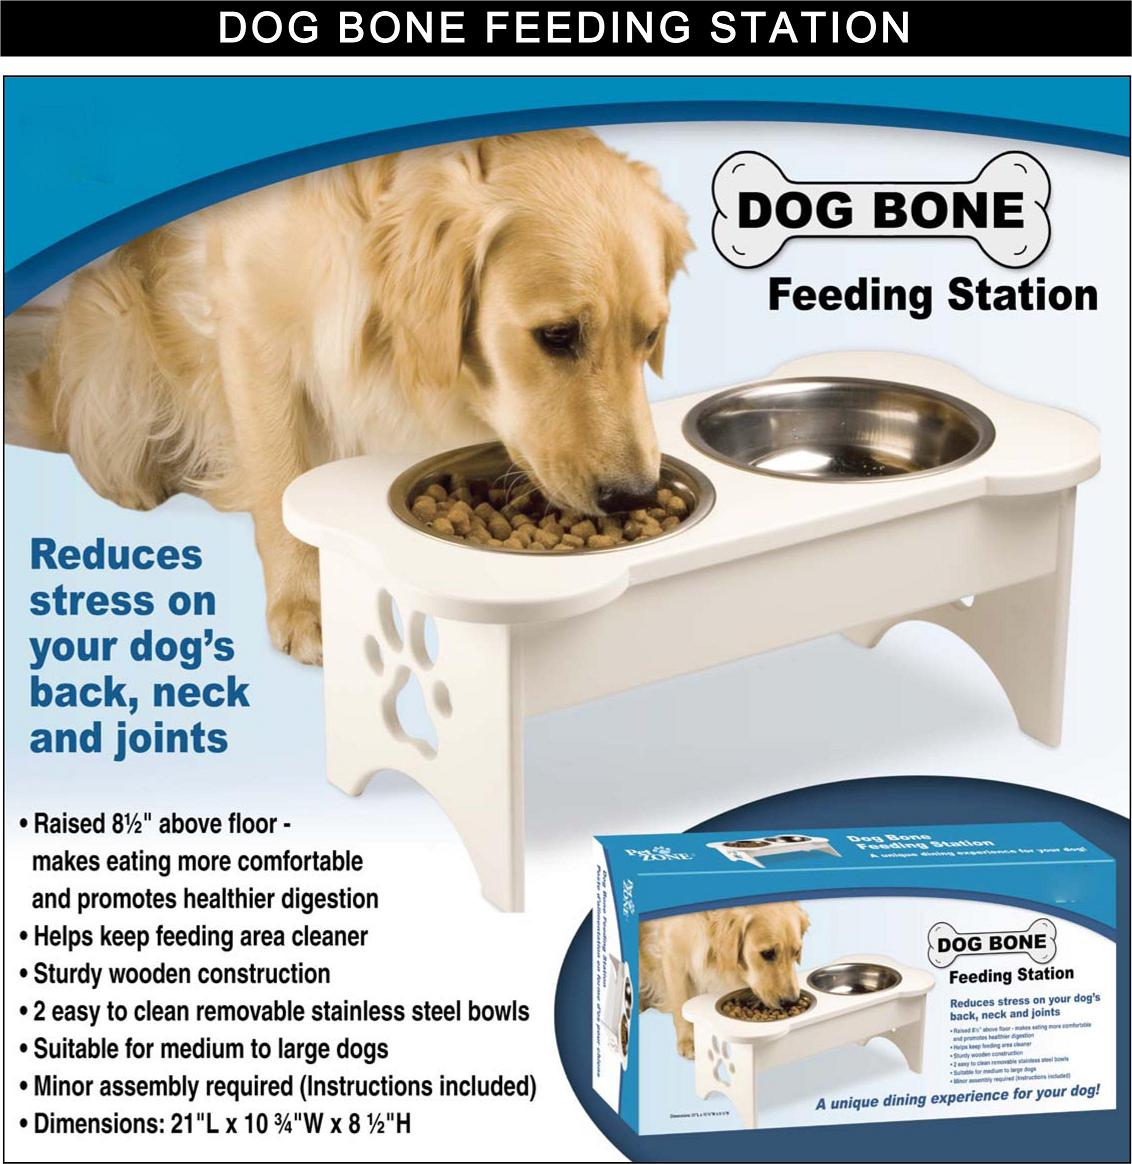 Dog bone feeding station bowls